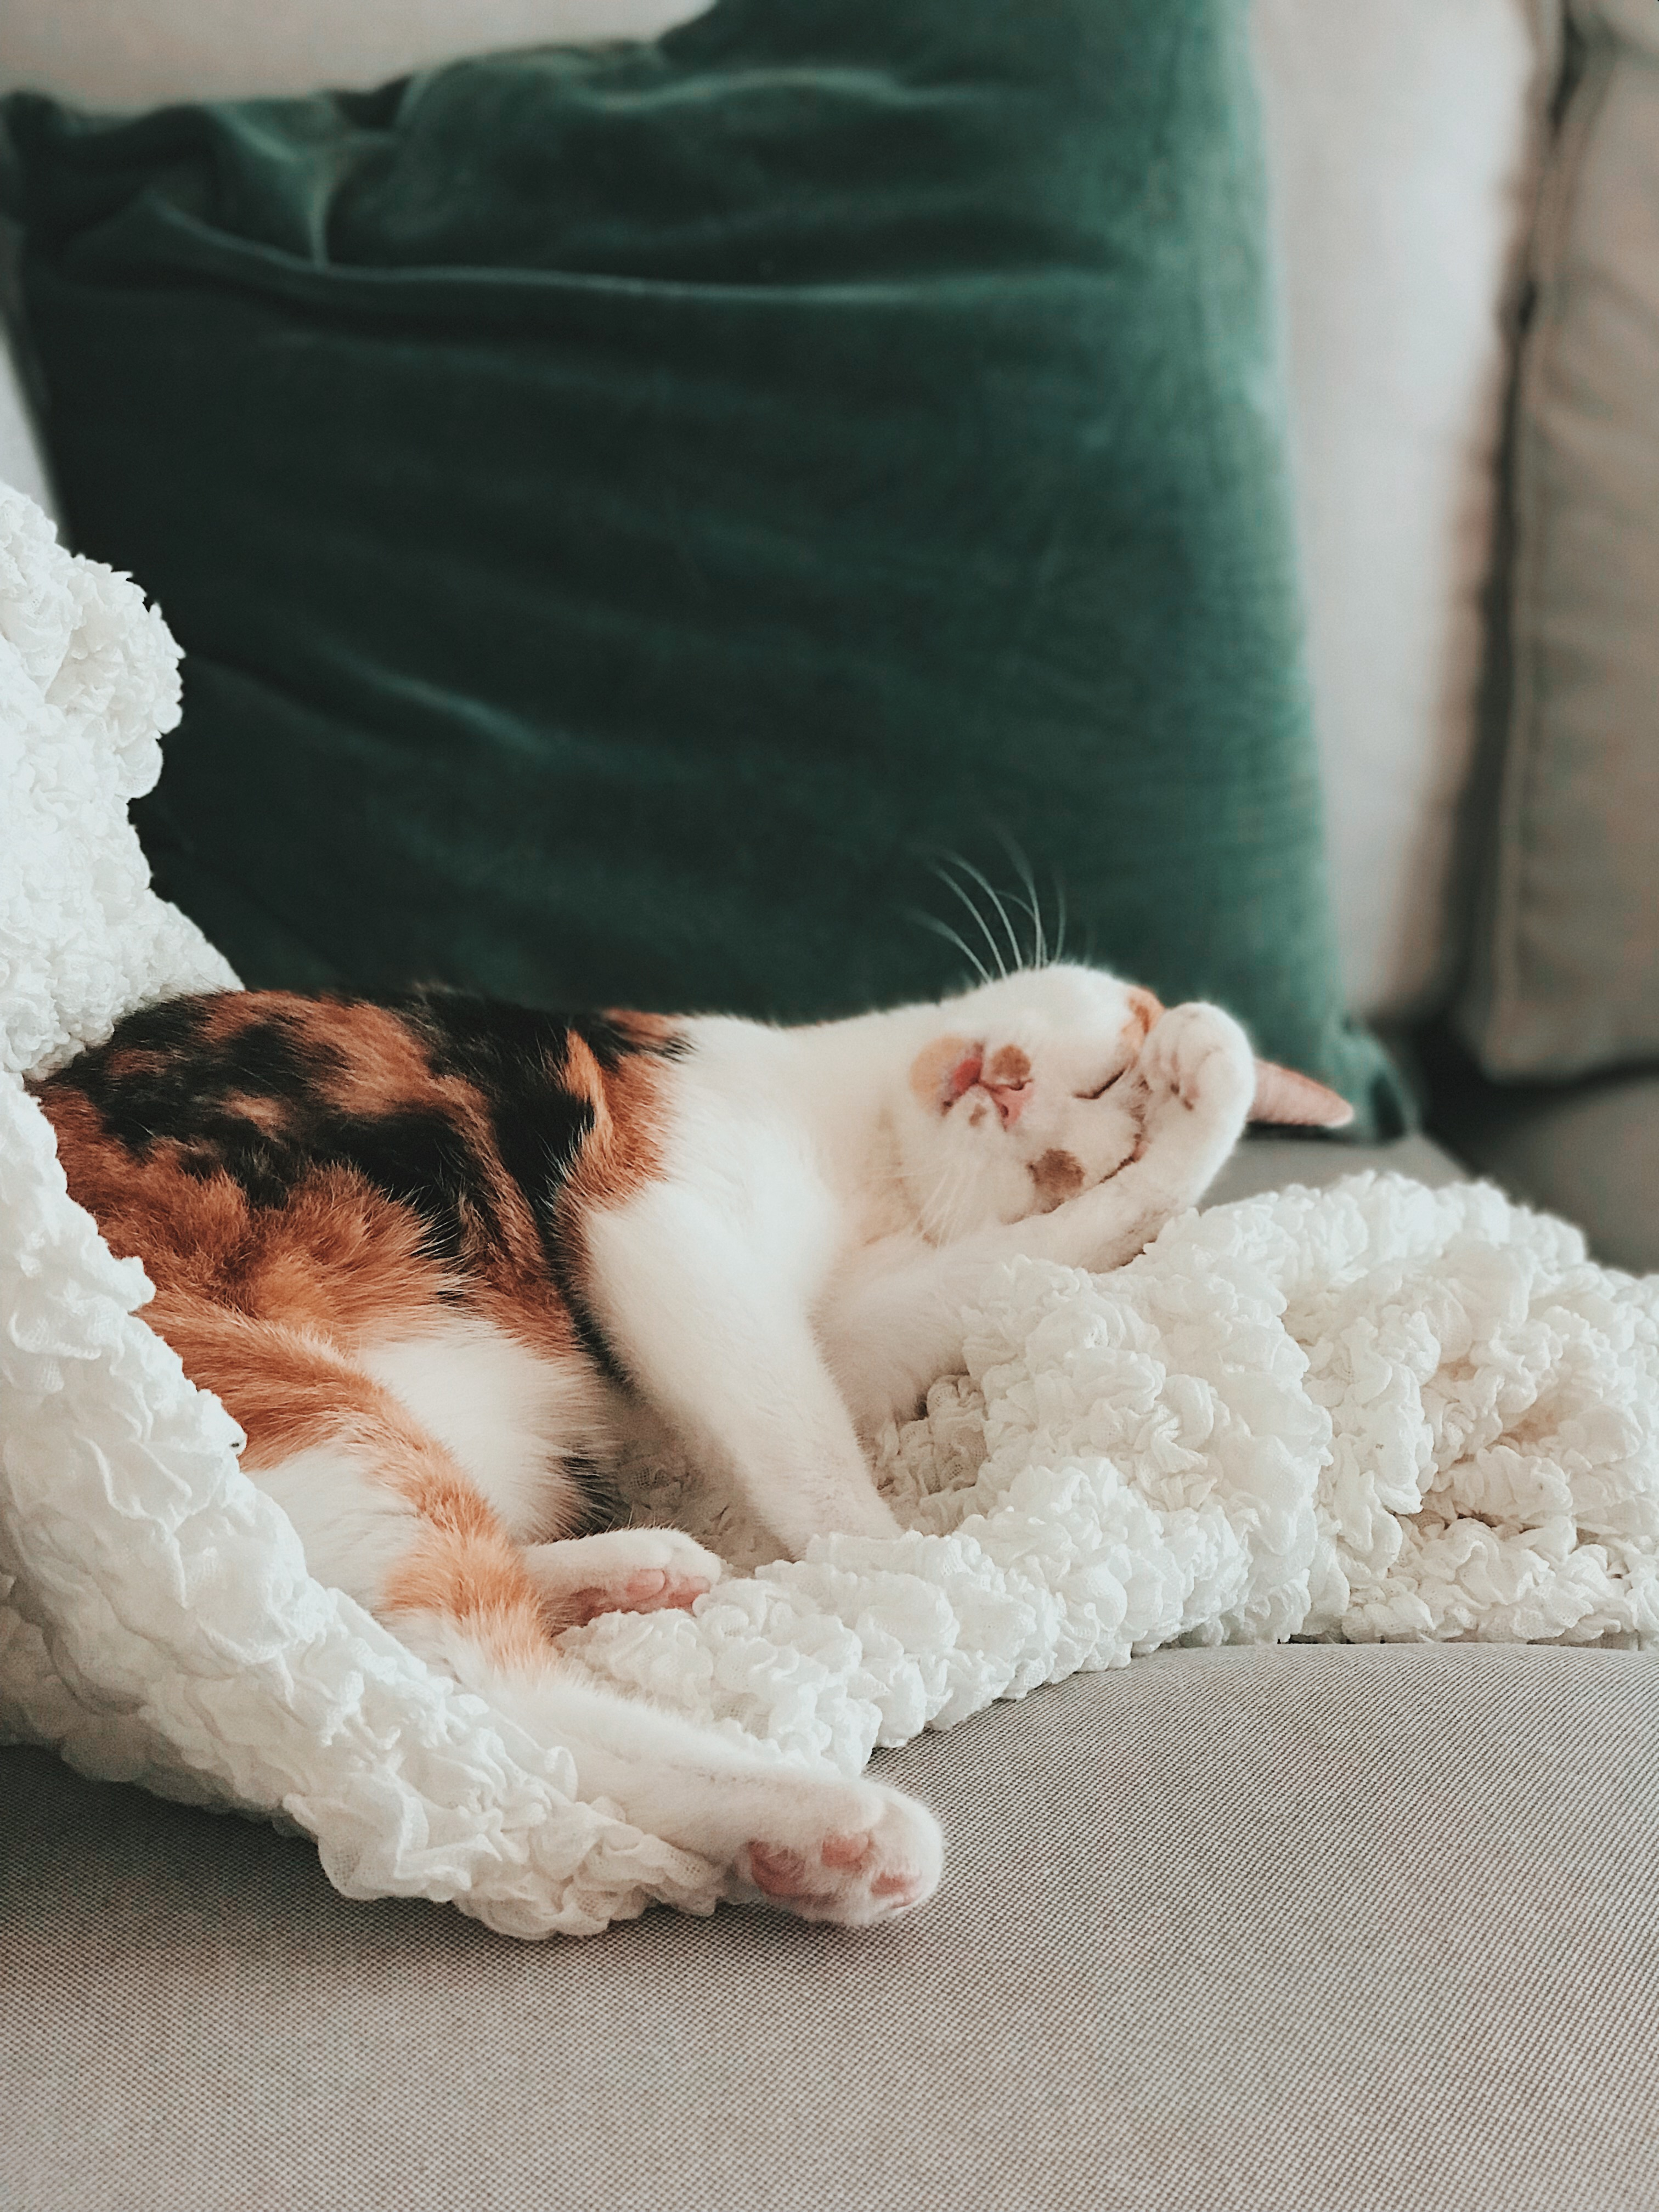 Cat Sleeping on Cushion